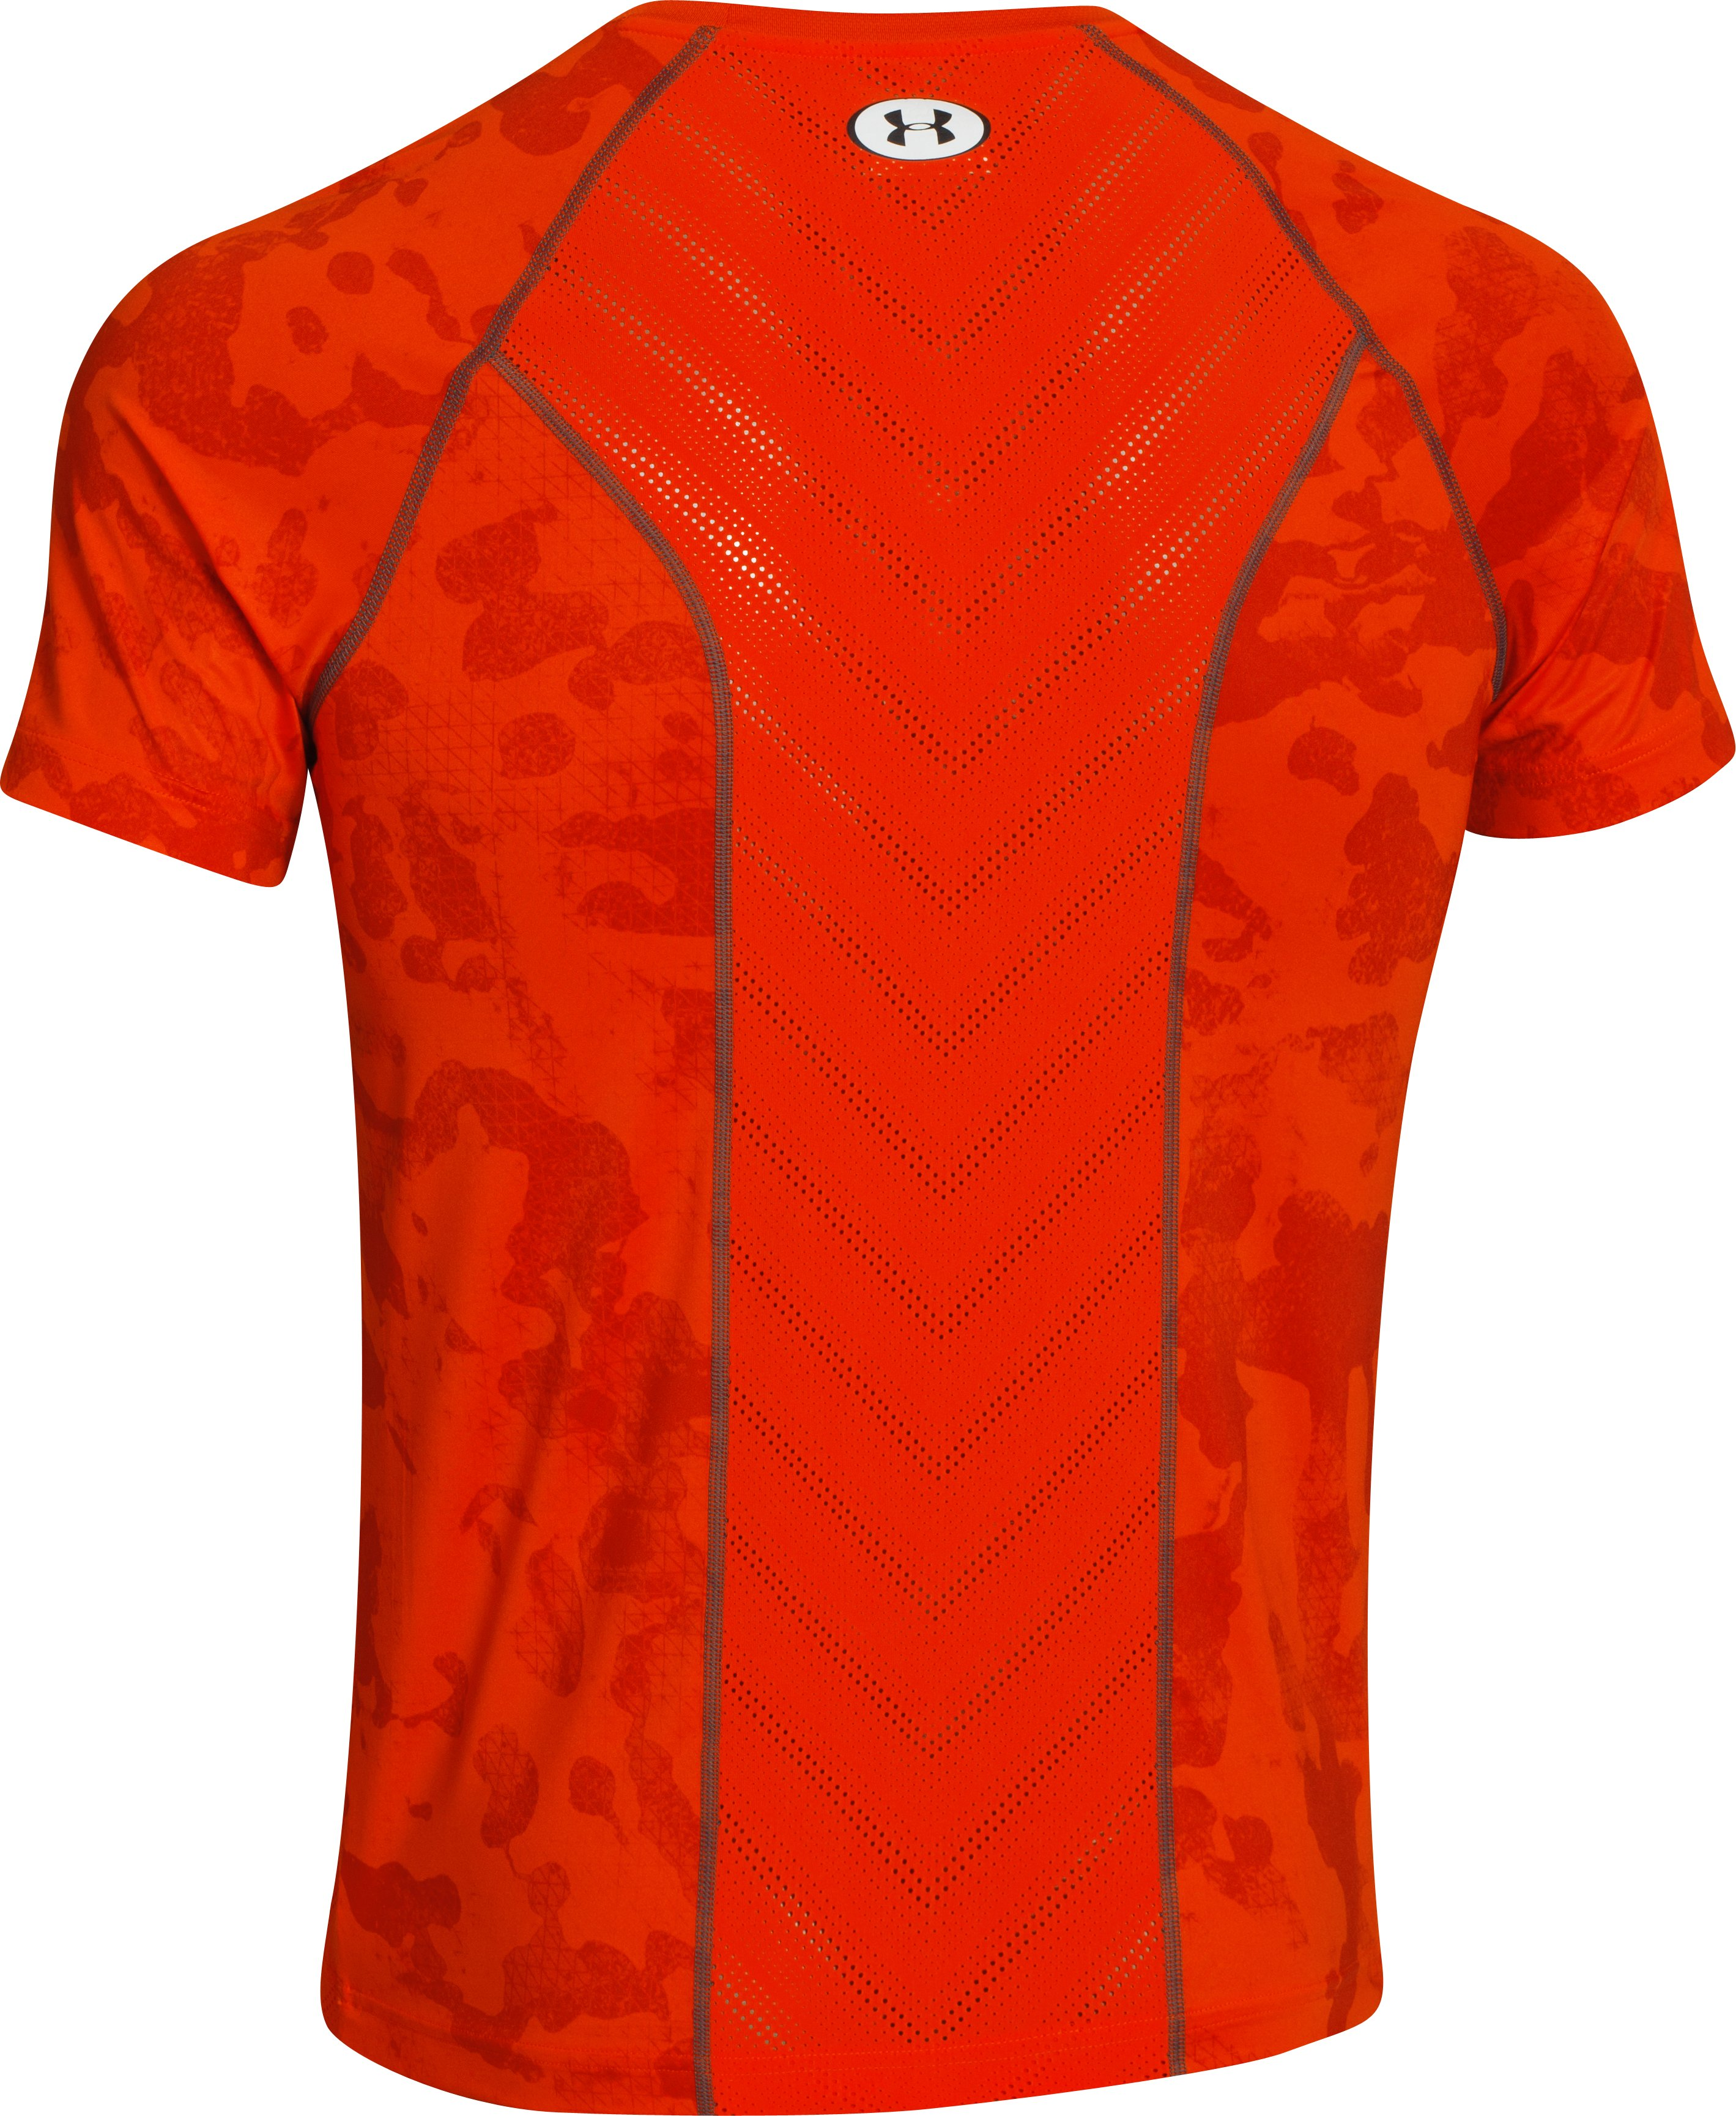 Men's HeatGear® Sonic ArmourVent™ Short Sleeve, Volcano